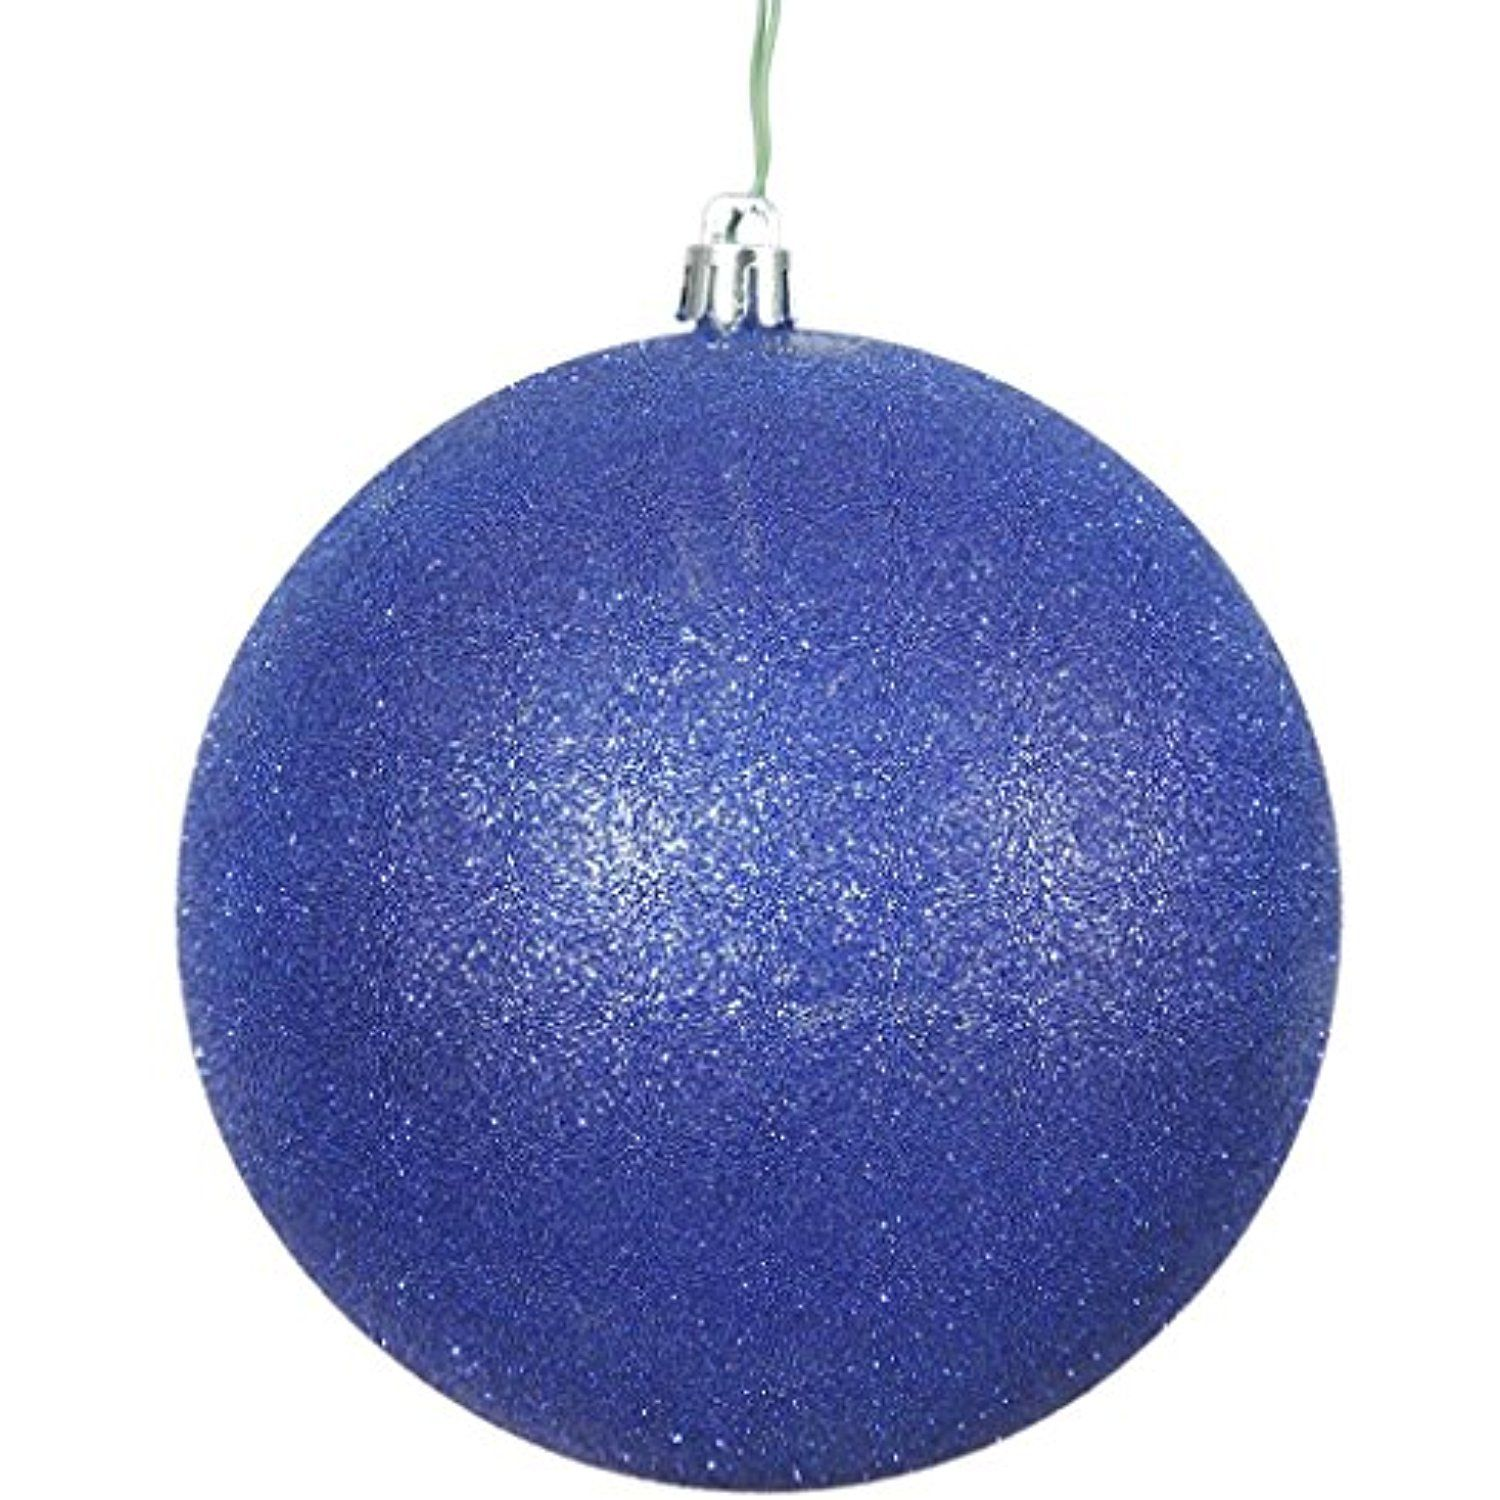 """Vickerman 457566 - 2.75"""" Cobalt Blue Glitter Ball Christmas Tree Ornament (12 pack) (N590722DG) ** Want additional info? Click on the image. (This is an affiliate link) #ChristmasBallOrnaments"""